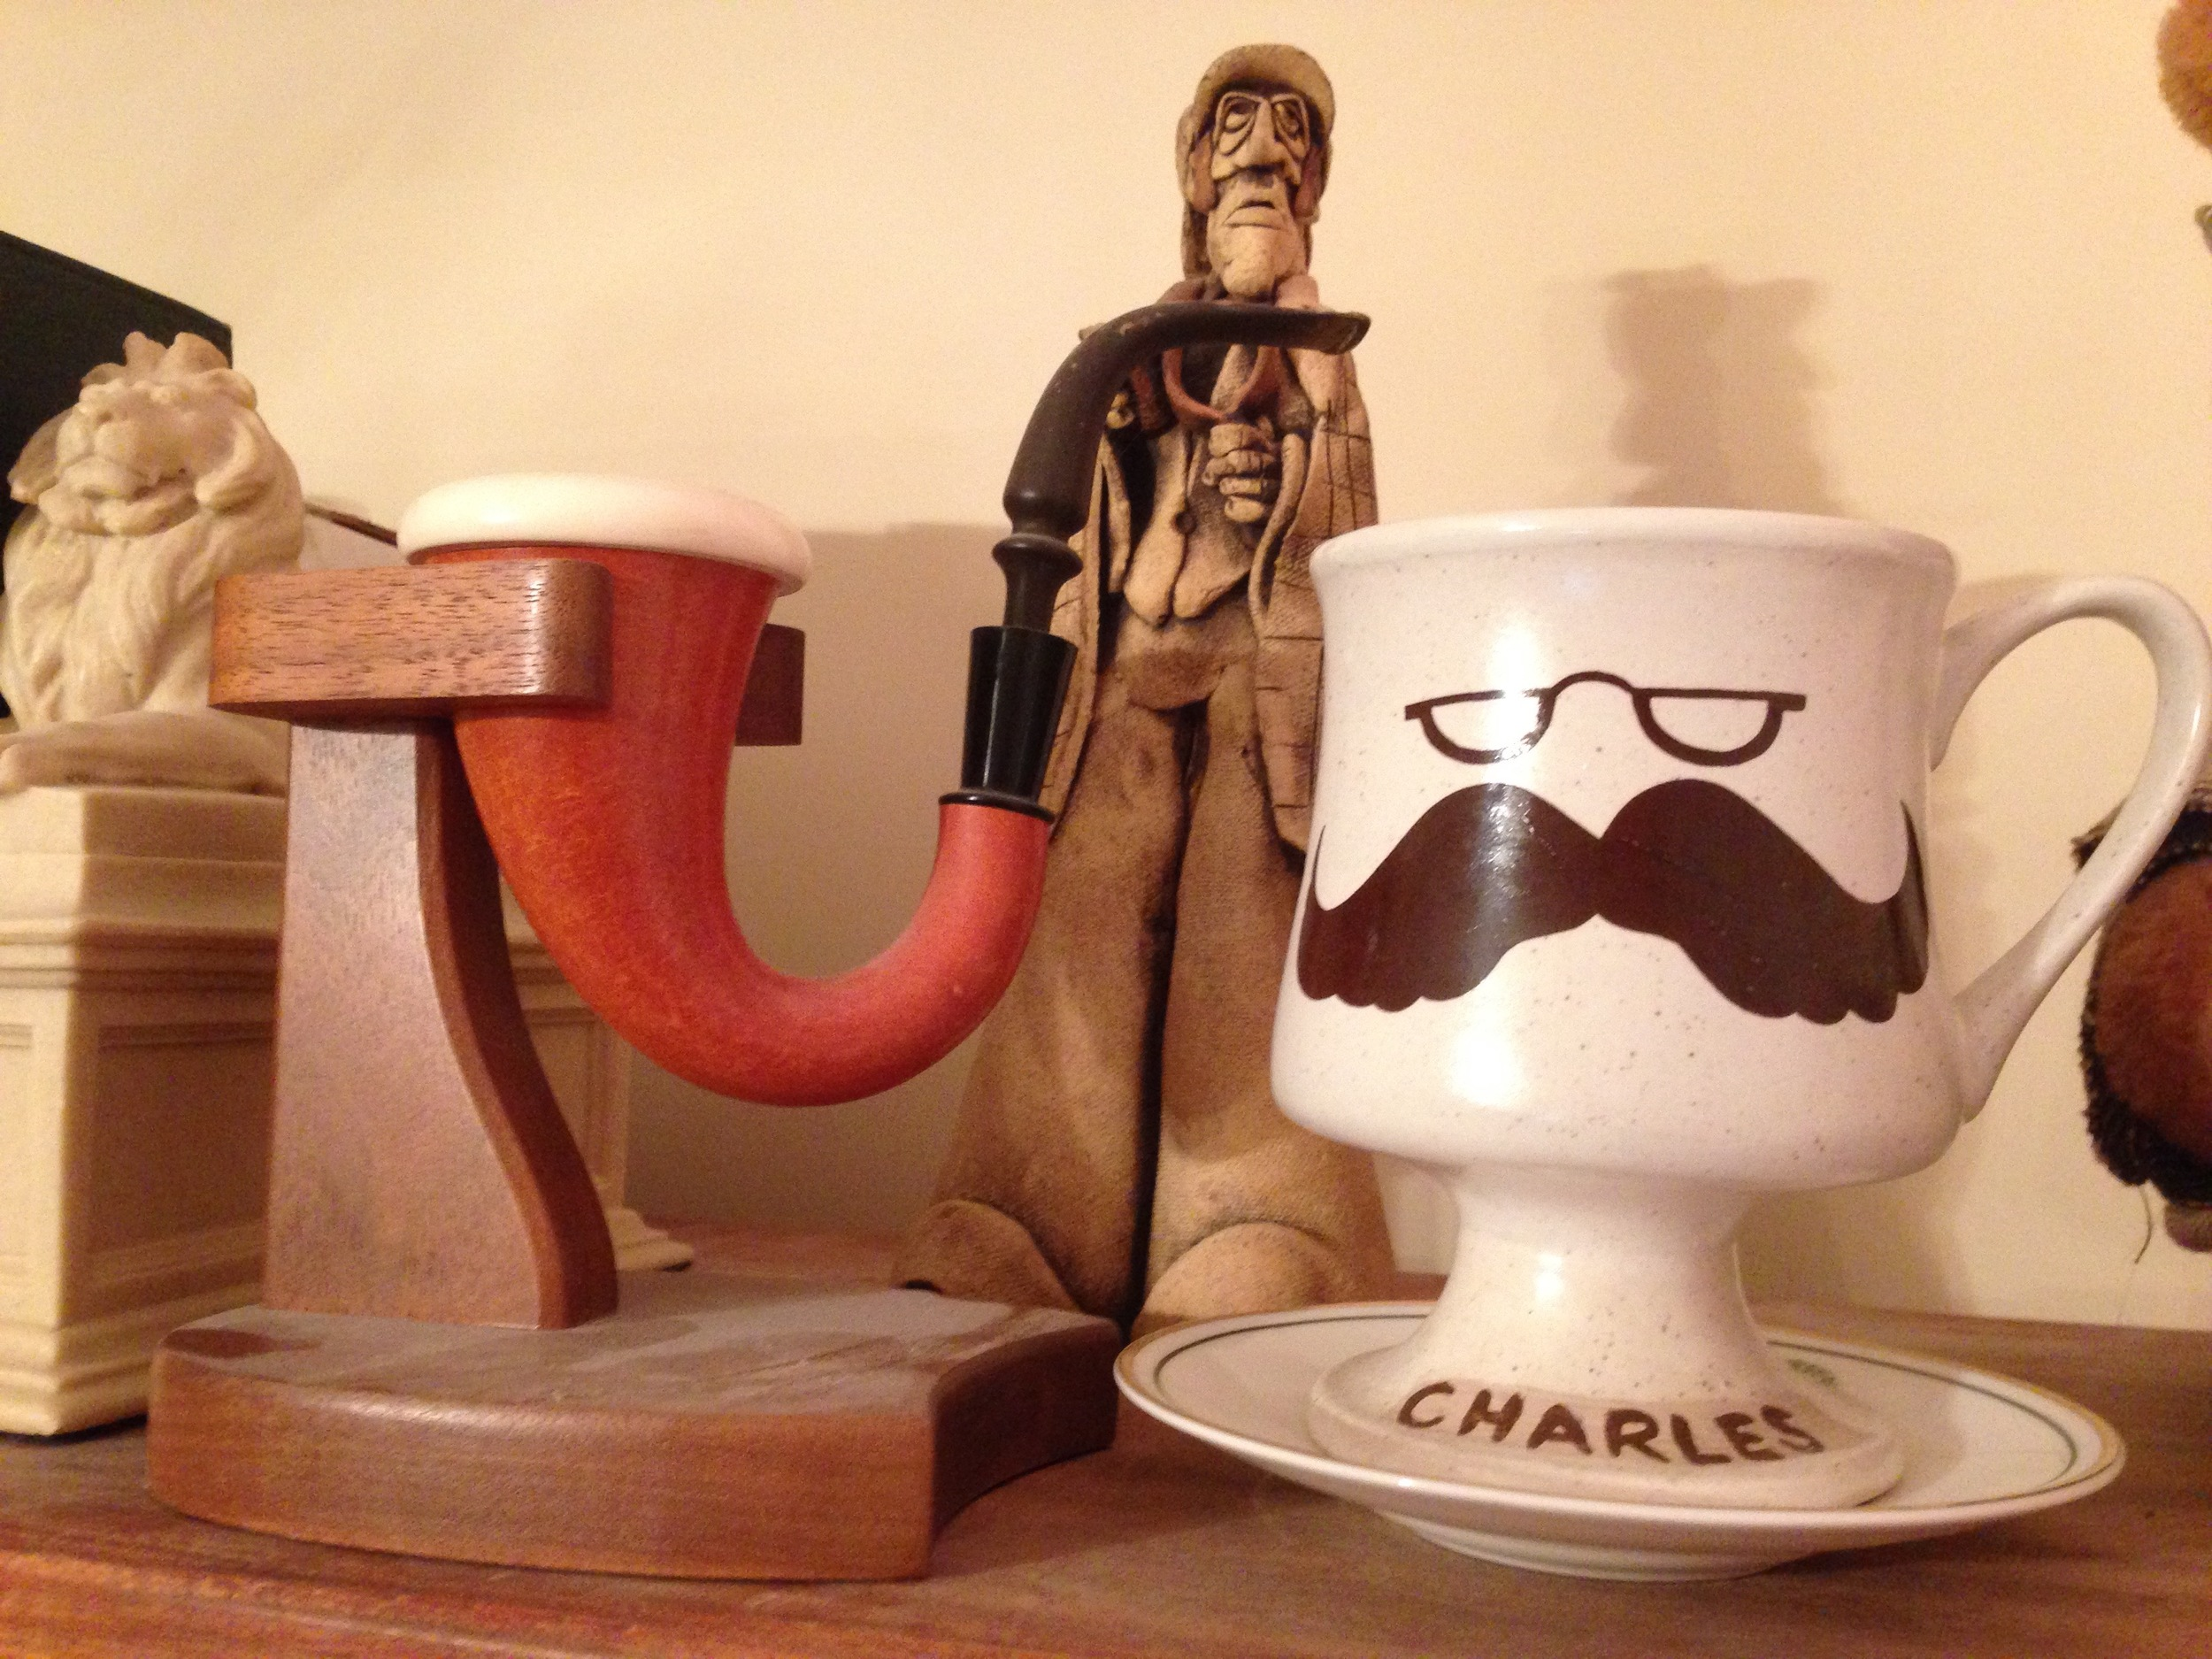 Some of the Holmes items Chuck and Peggy gave me over the years. The saucer under the moustache cup is from Simpsons in the Strand. (Chuck had sticky fingers.)